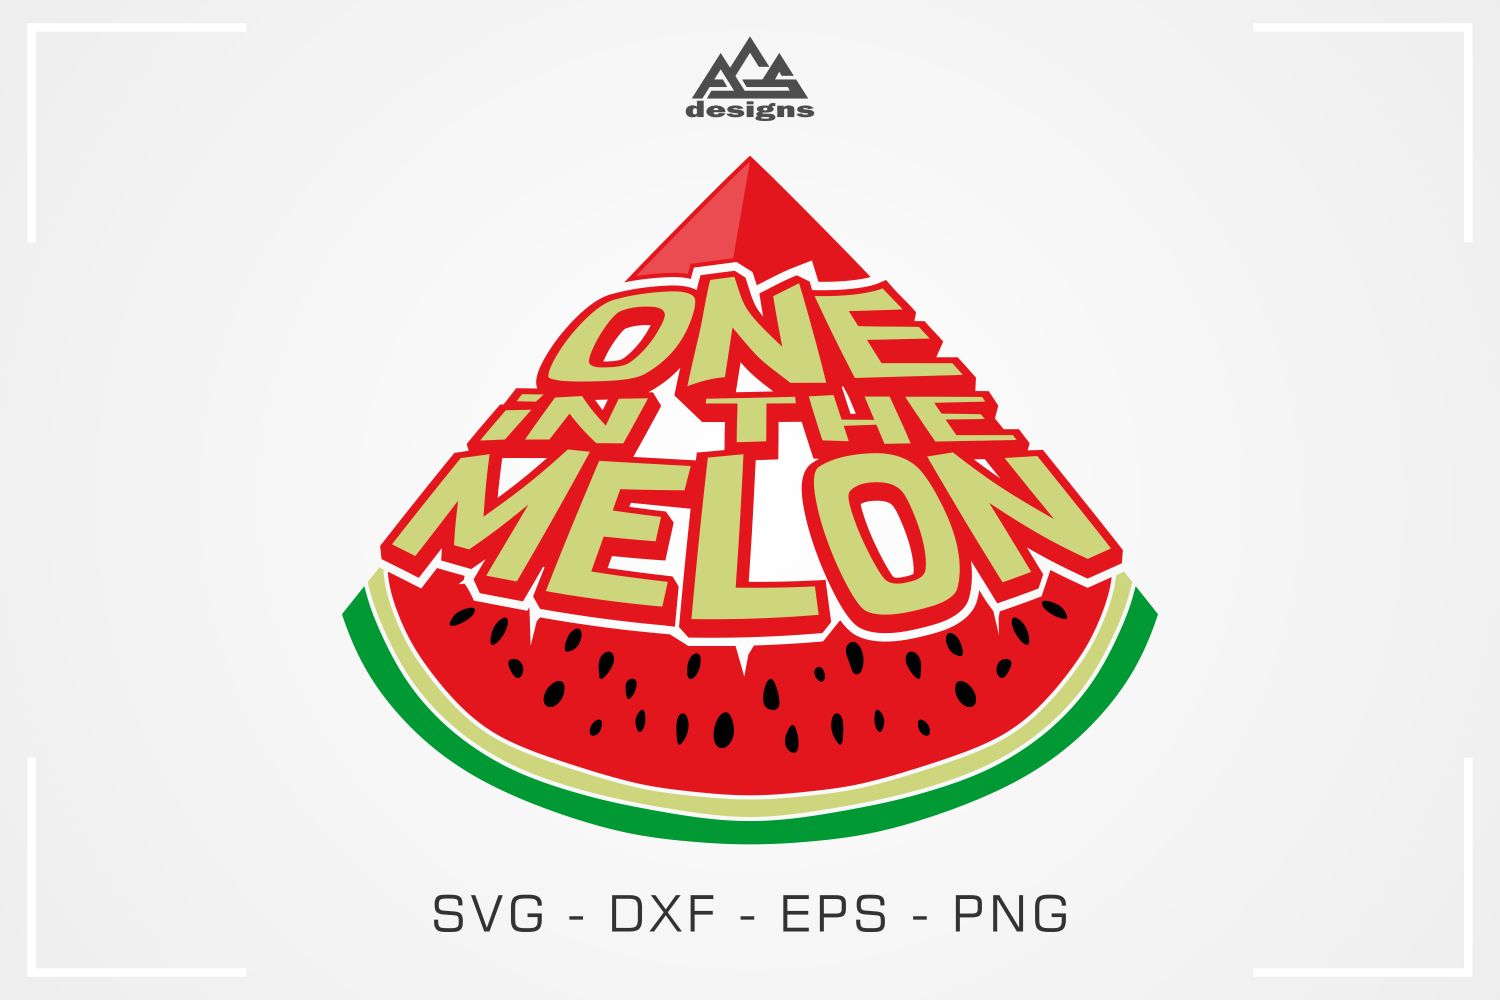 One In The Melon Summer Melon Svg Design By Agsdesign